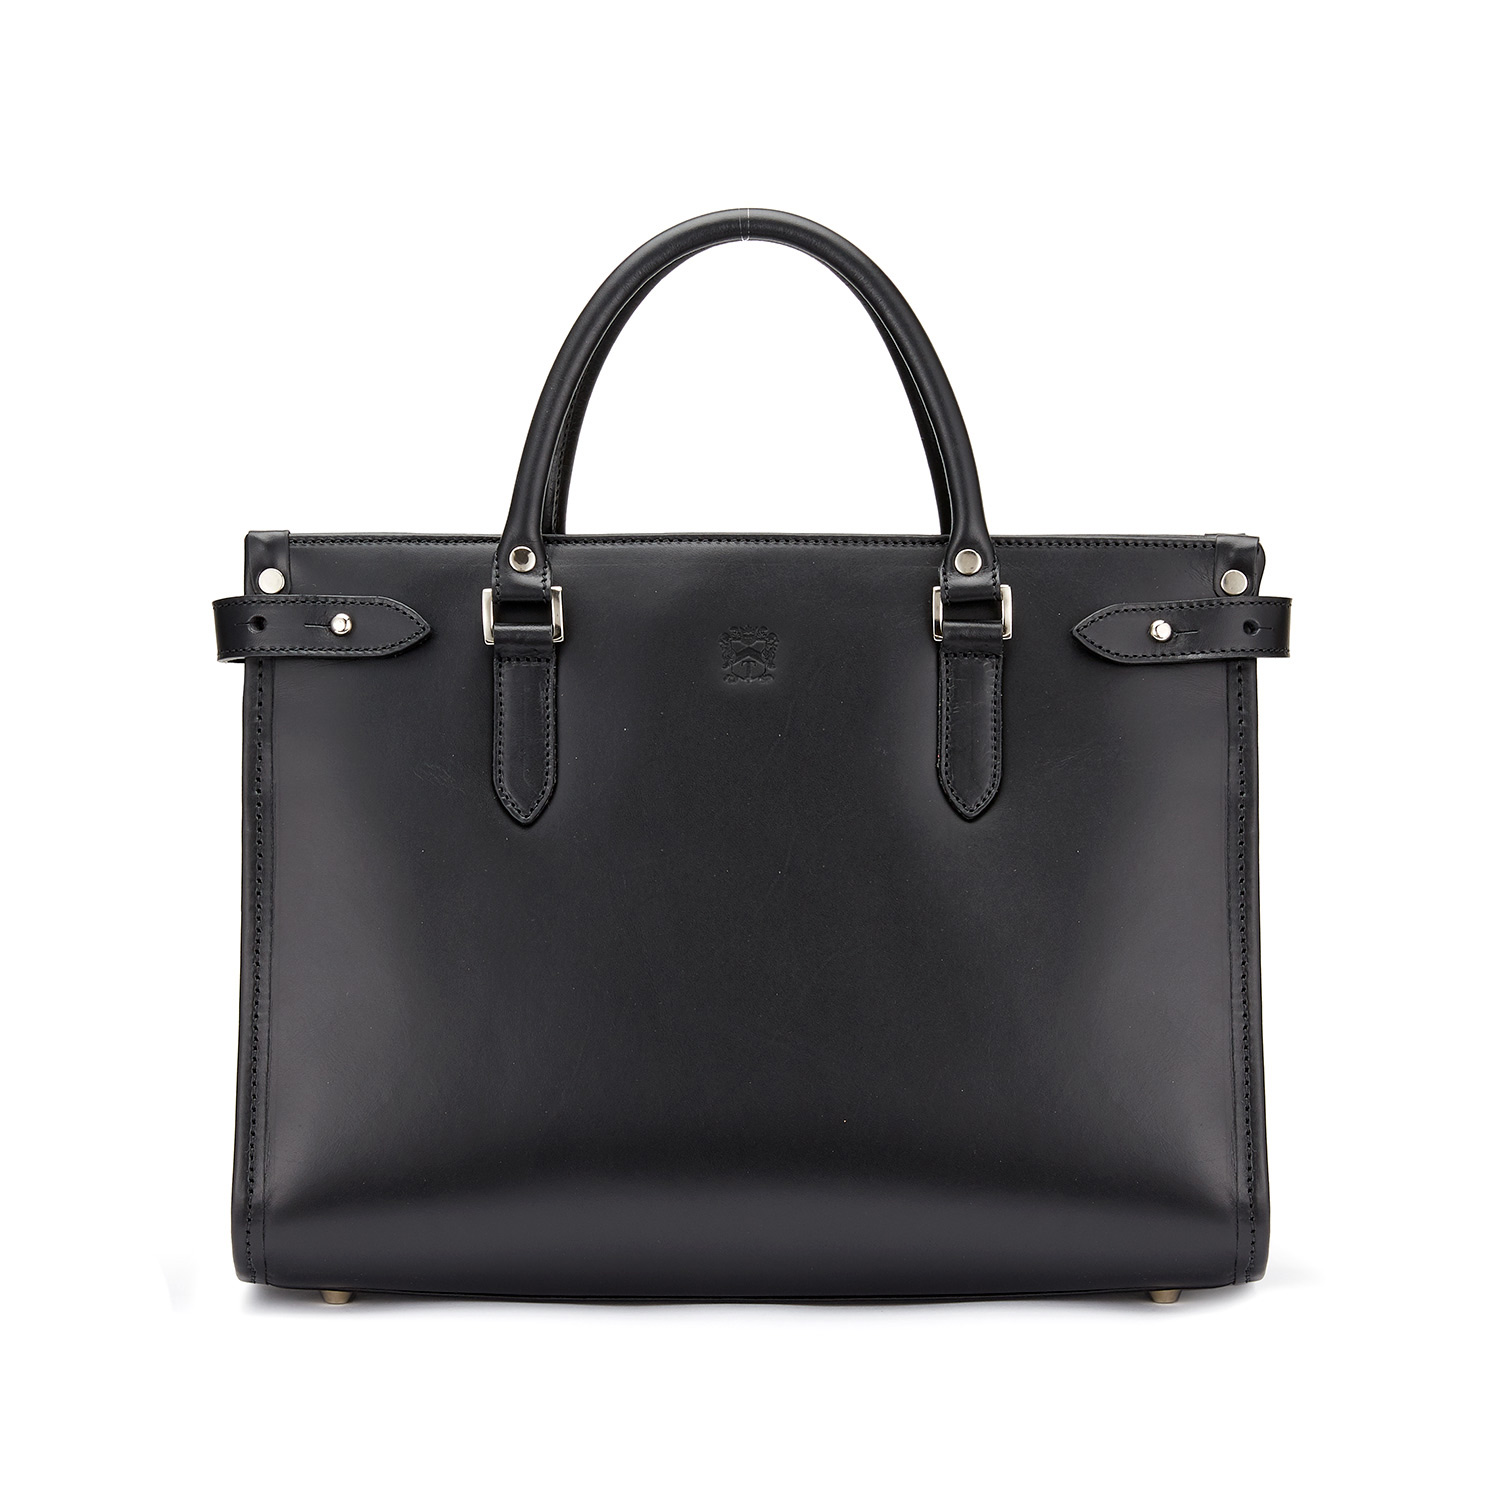 Tusting Kimbolton Leather Tote (small) in Black